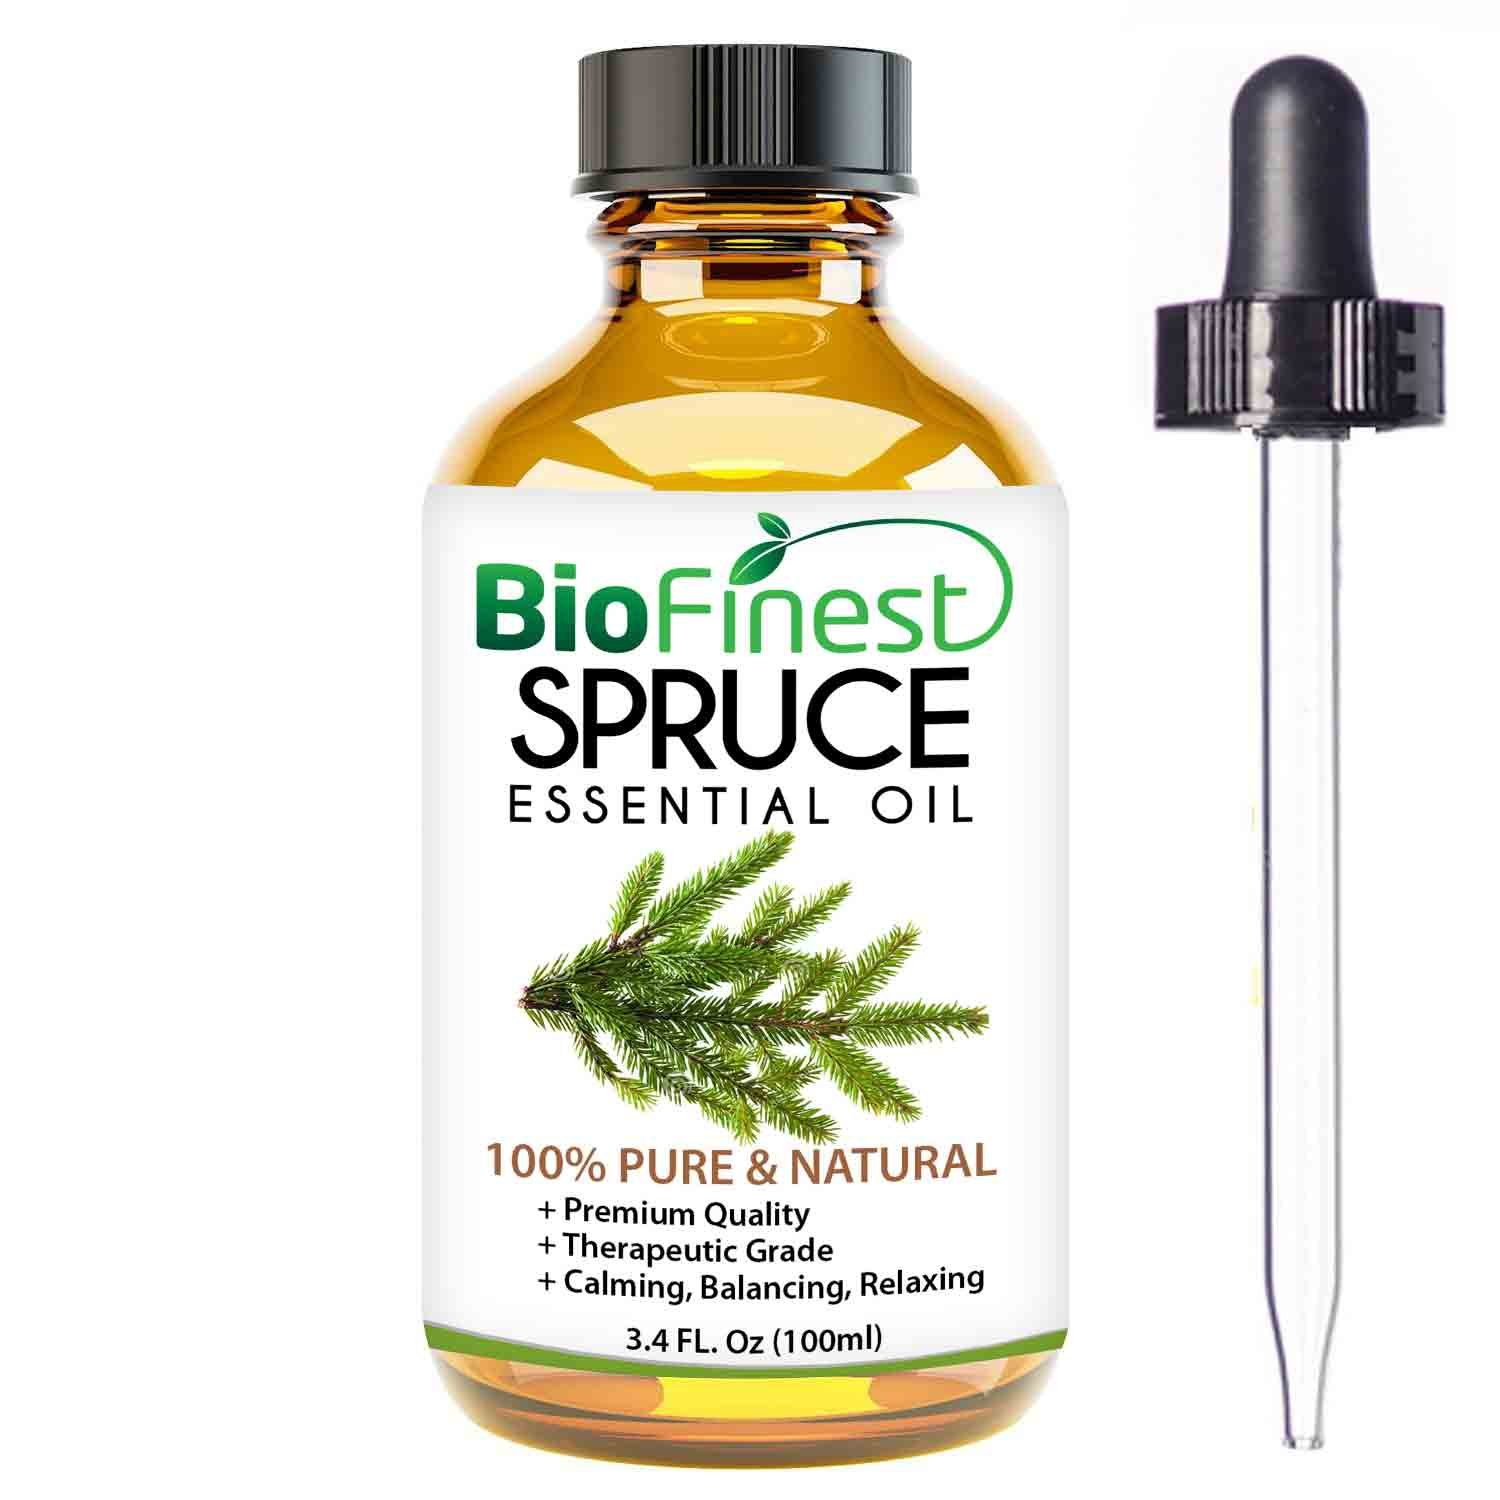 Biofinest Spruce Essential Oil - 100% Pure Organic Therapeutic Grade - Best for Aromatherapy, Skin and Hair Care, Ease Sleep Stress Bad Mood Fatigue Muscle Joint Pain - Free E-Book & Dropper (100ml) by BioFinest (Image #1)